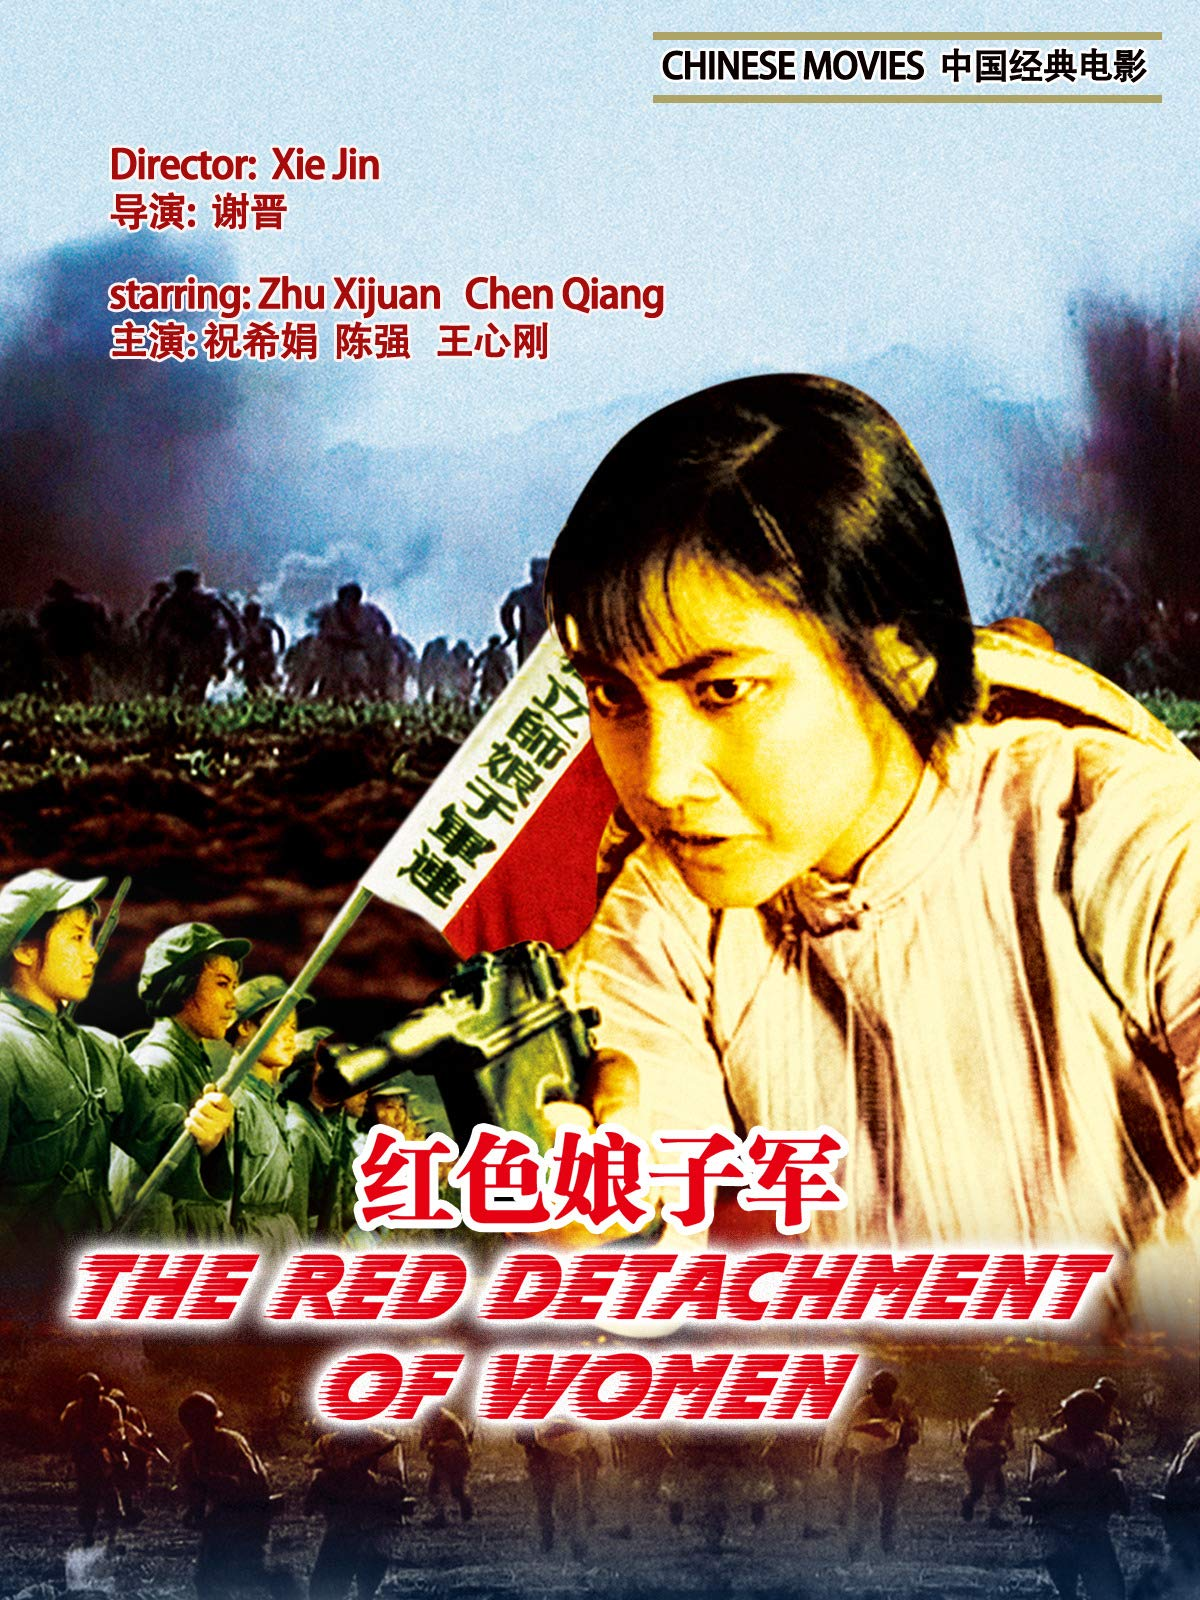 Chinese Movies-The red detachment of women